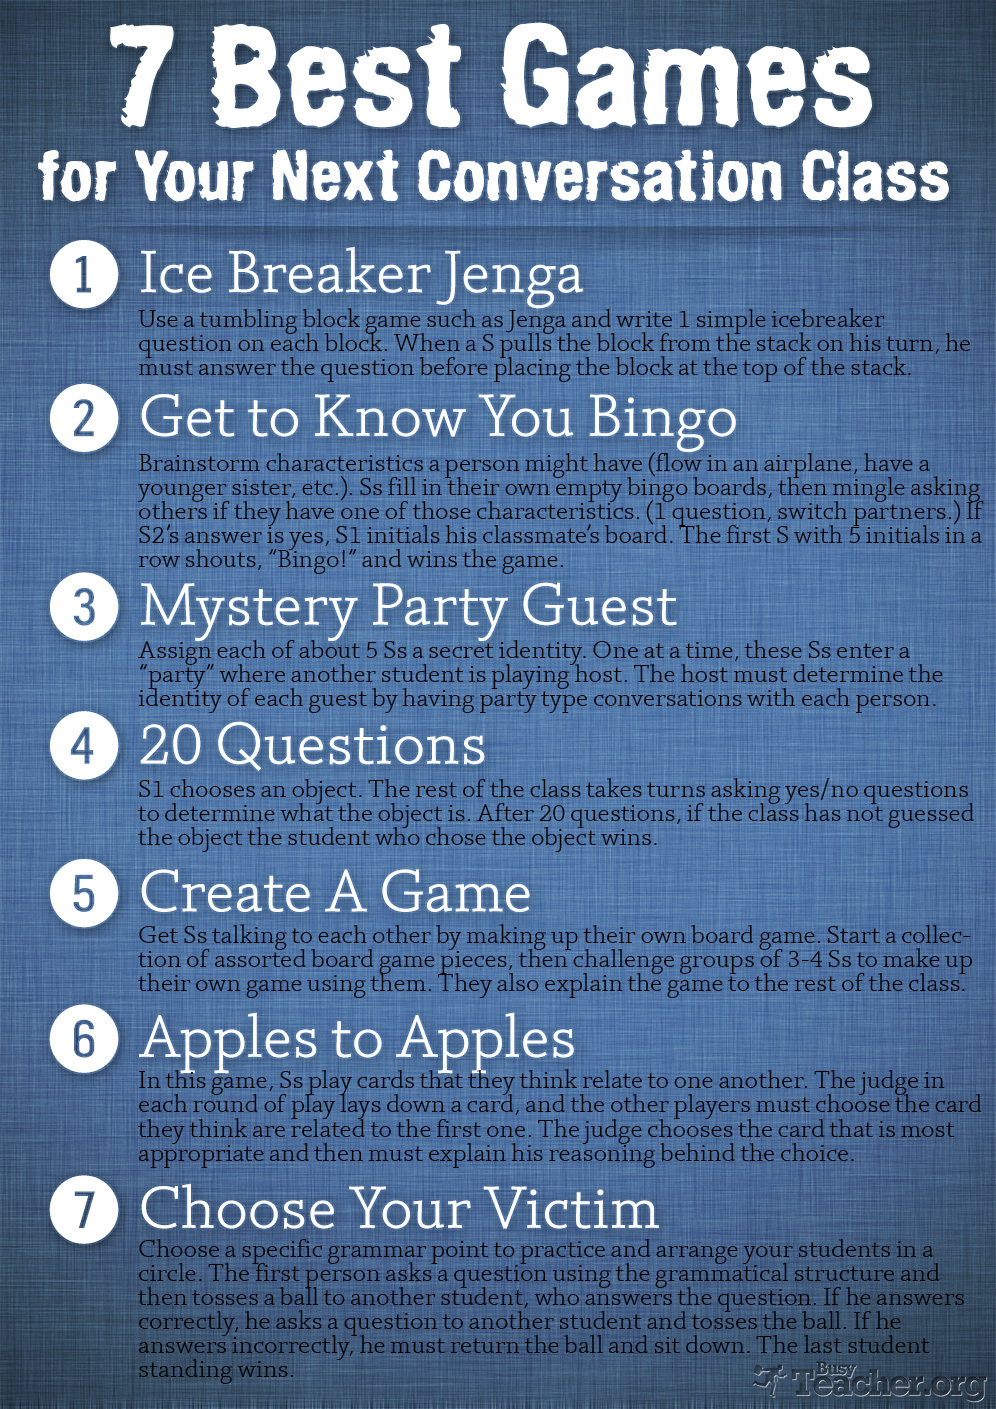 POSTER: 7 Best Games for Your Next Conversation Class